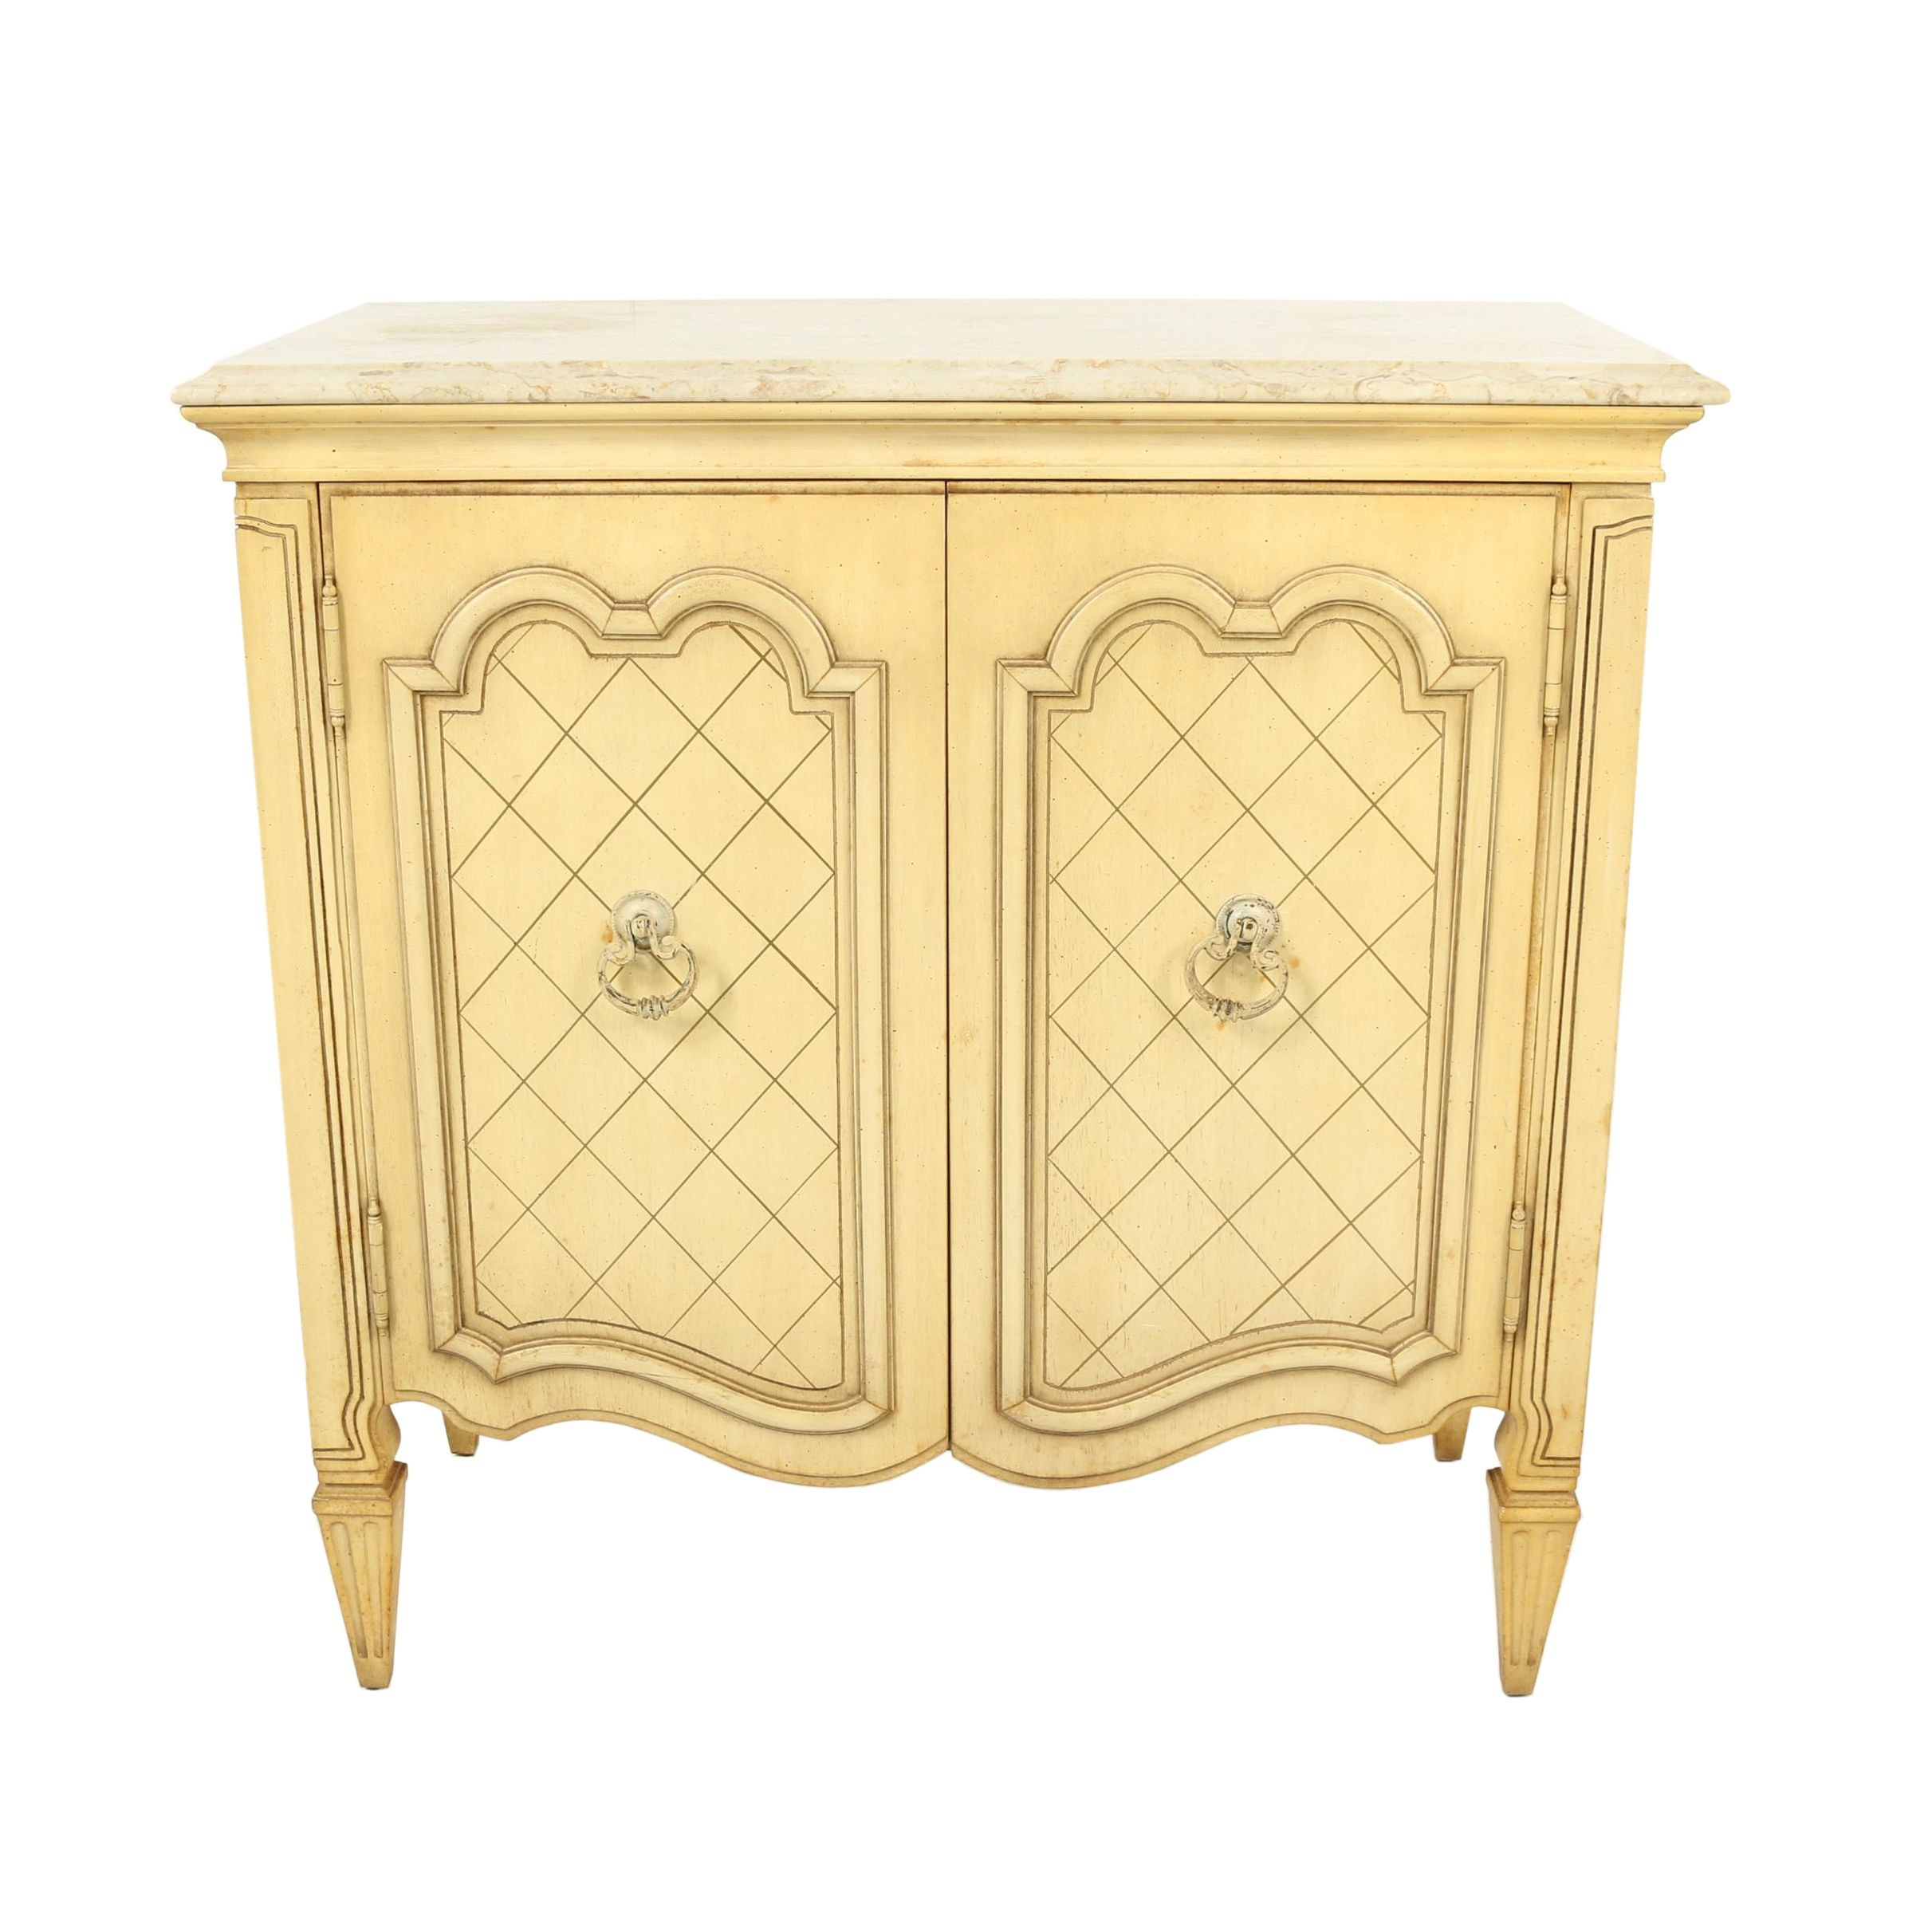 Louis XVI Style Stone Top Painted Wooden Side Cabinet with Outlet, 20th Century